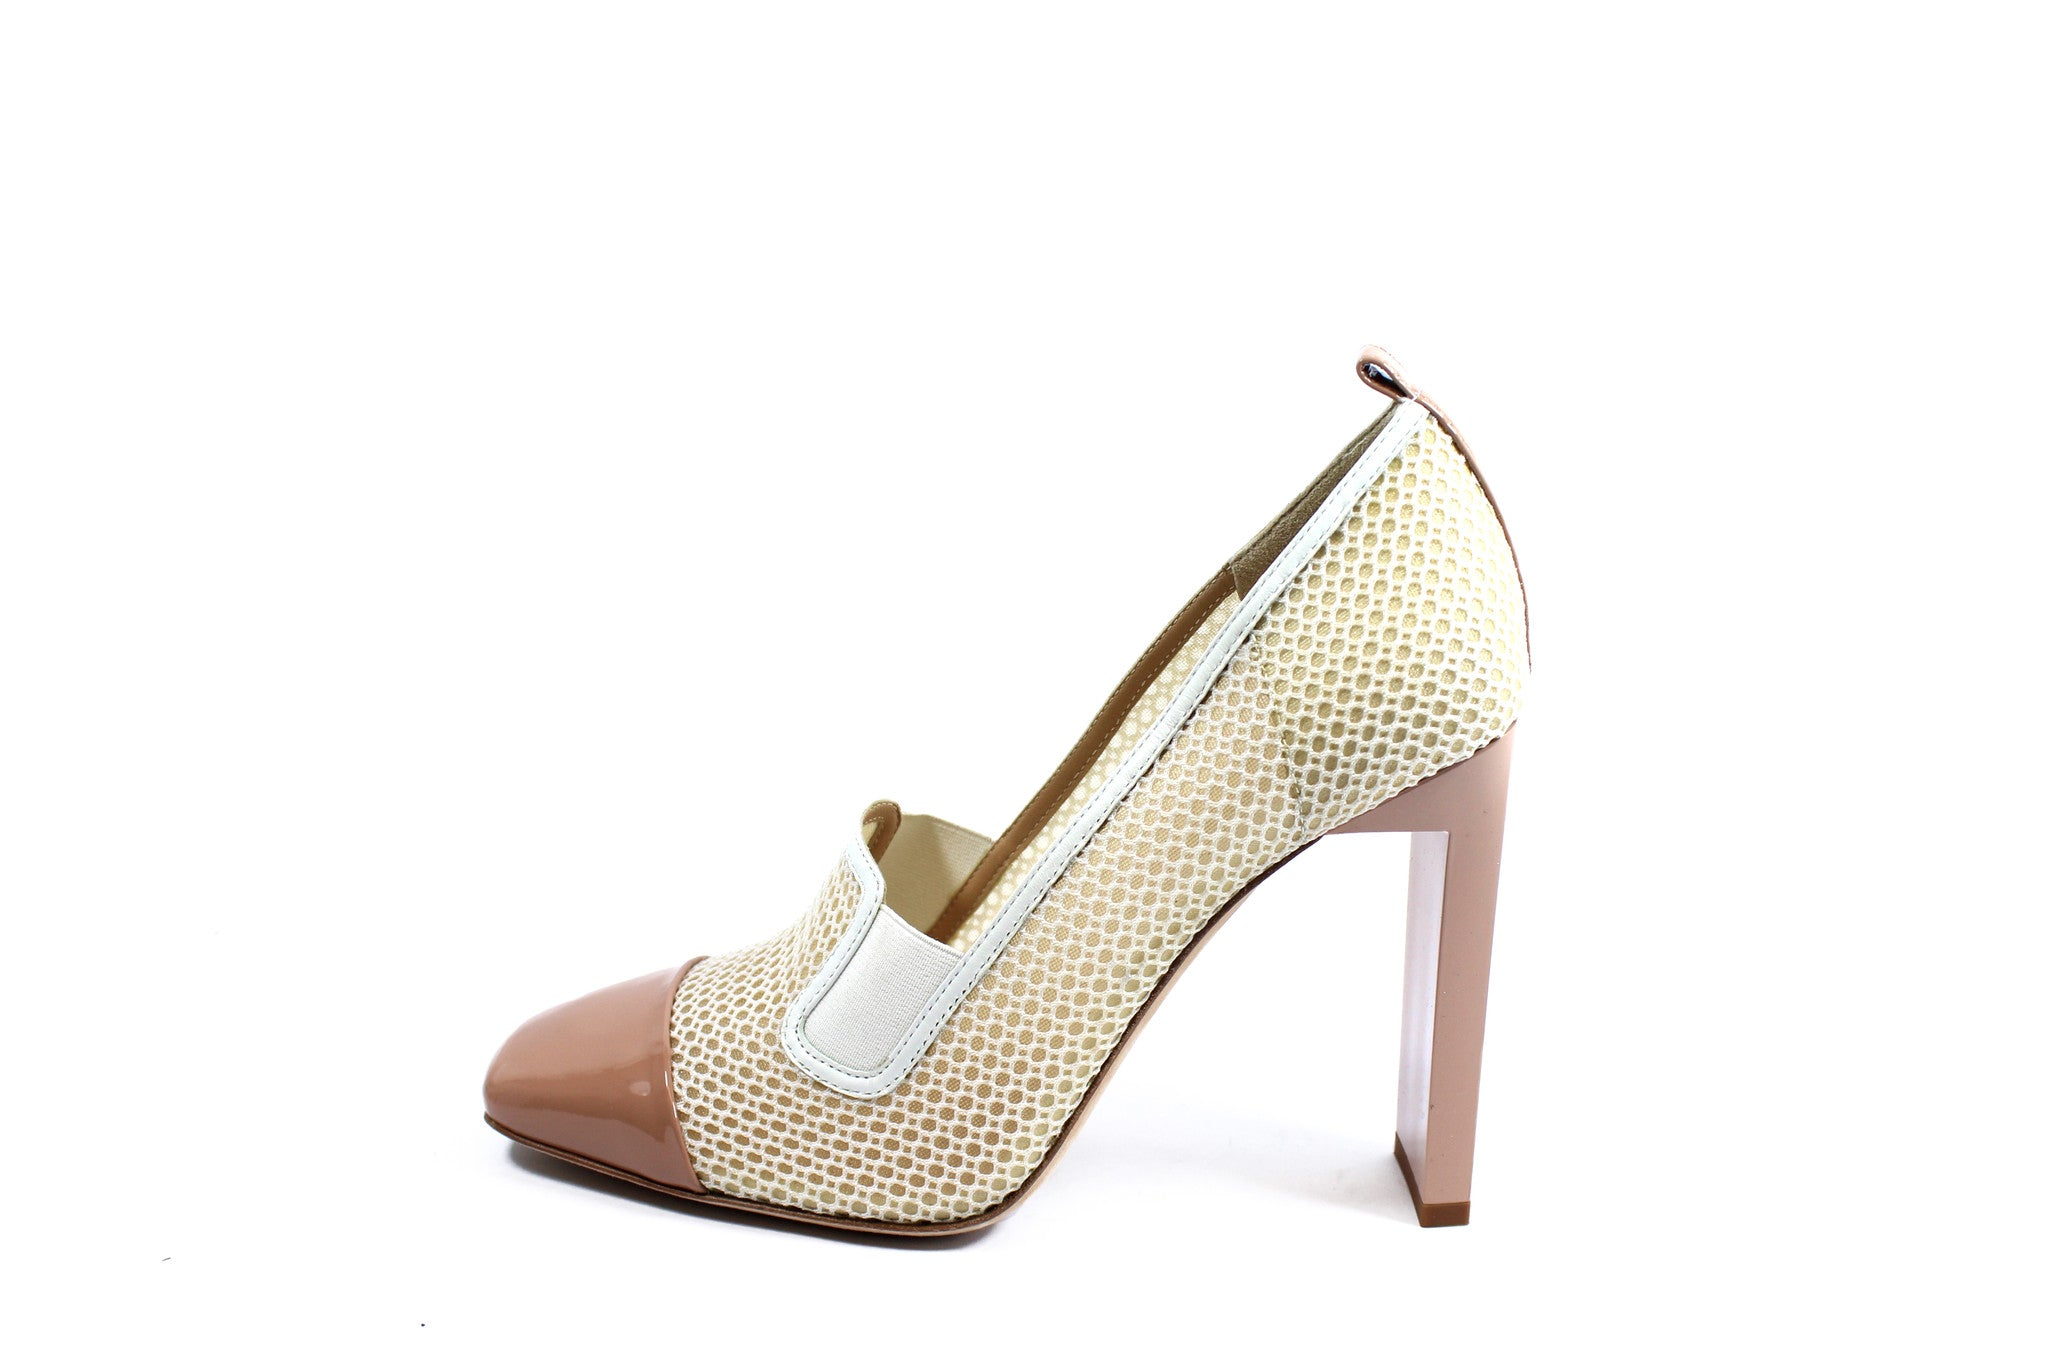 Reed Krakoff Mesh Atlas Nude and White Pumps (Size 38.5) - Encore Consignment - 2